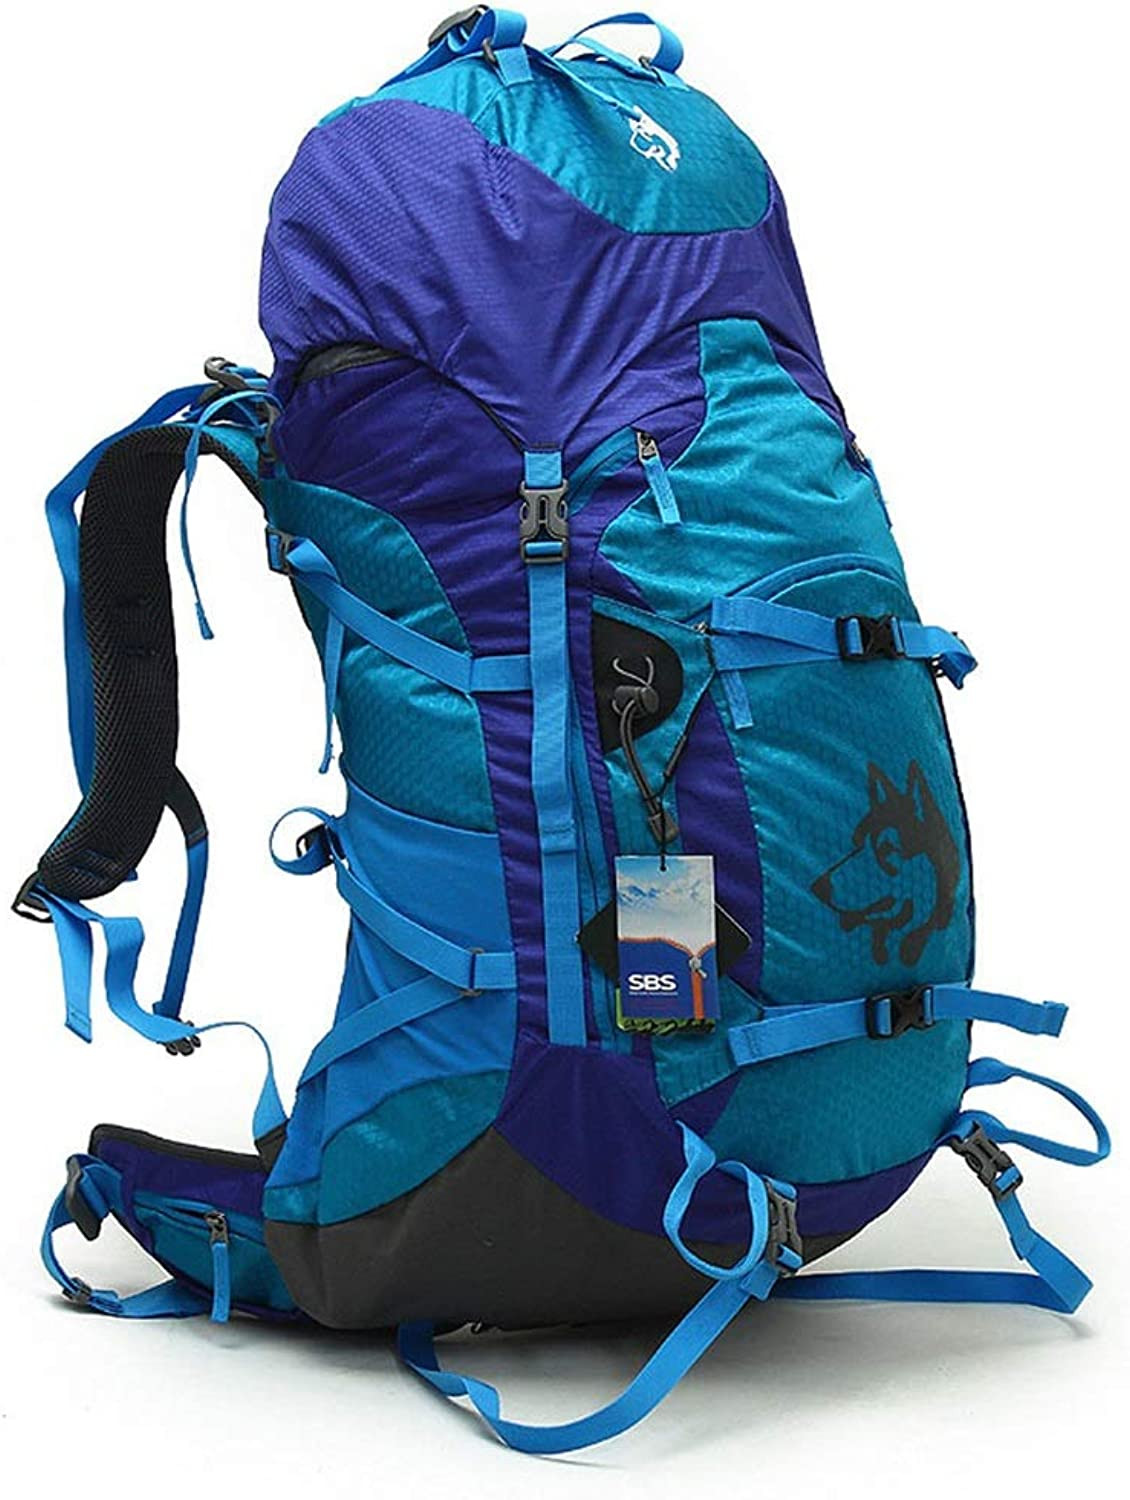 Outdoor Camping Backpack Unisex Hiking Backpack 55L Large Capacity Travel Hiking Bag Waterproof Sports Backpack (color   blueee)